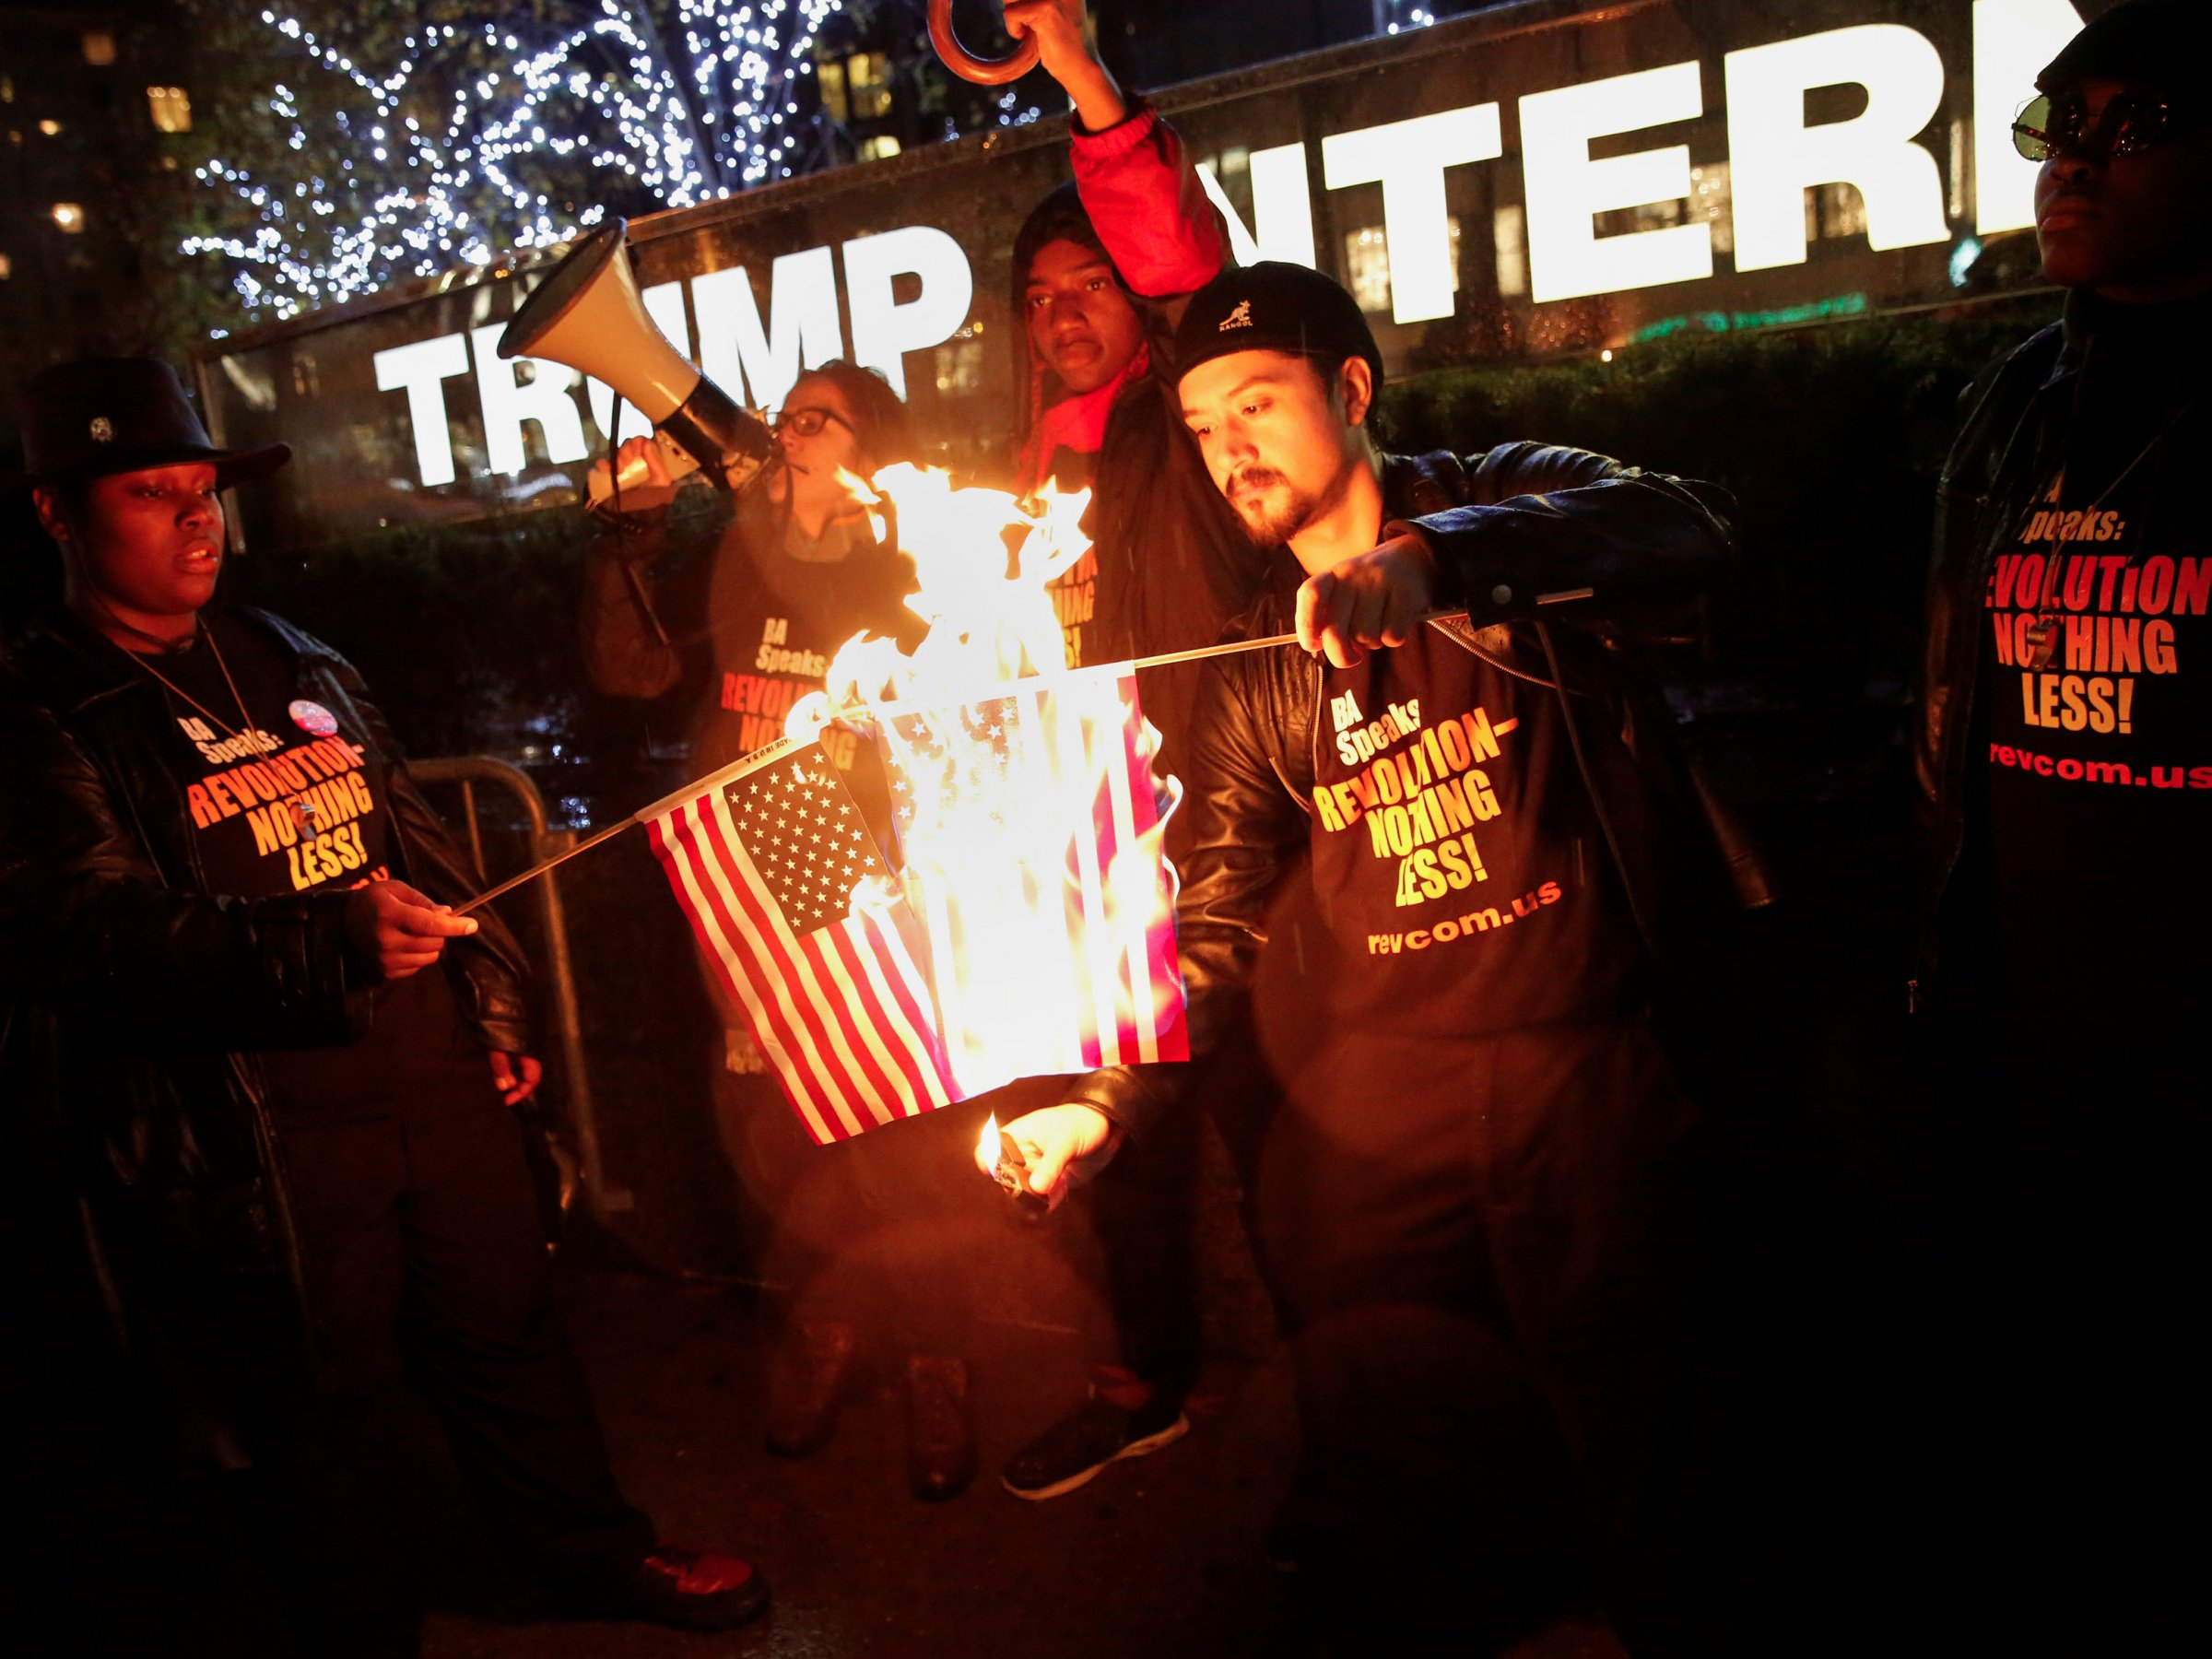 Activists burn the US flag in front of Trump Tower in New York City